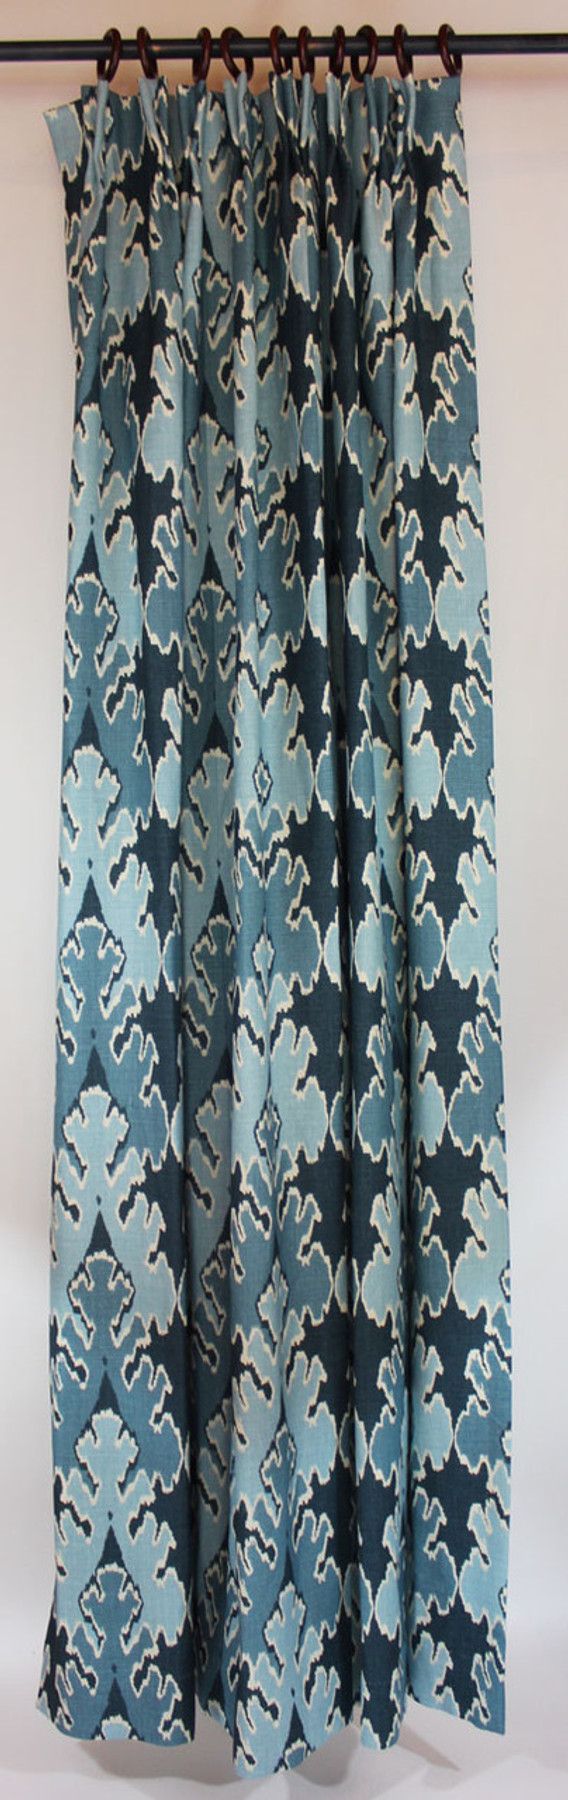 One pleated panel (1 1/2 Widths) in Kelly Wearstler Bengal Bazaar Teal